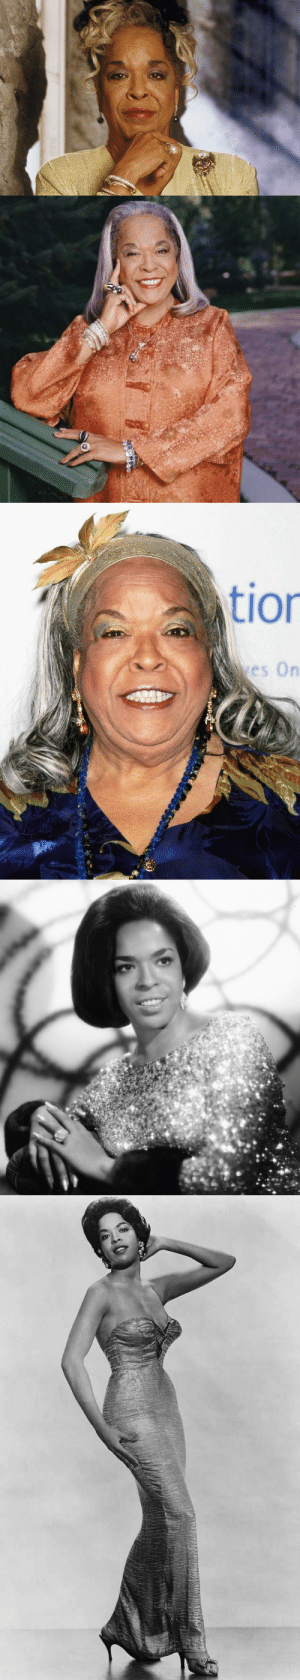 Detroit, Target, and Tumblr: tion  es On behindthegrooves:   Singer and actress Della Reese (born Delloreese Patricia Early in Detroit, MI) - July 6, 1931 - November 19, 2017, RIP